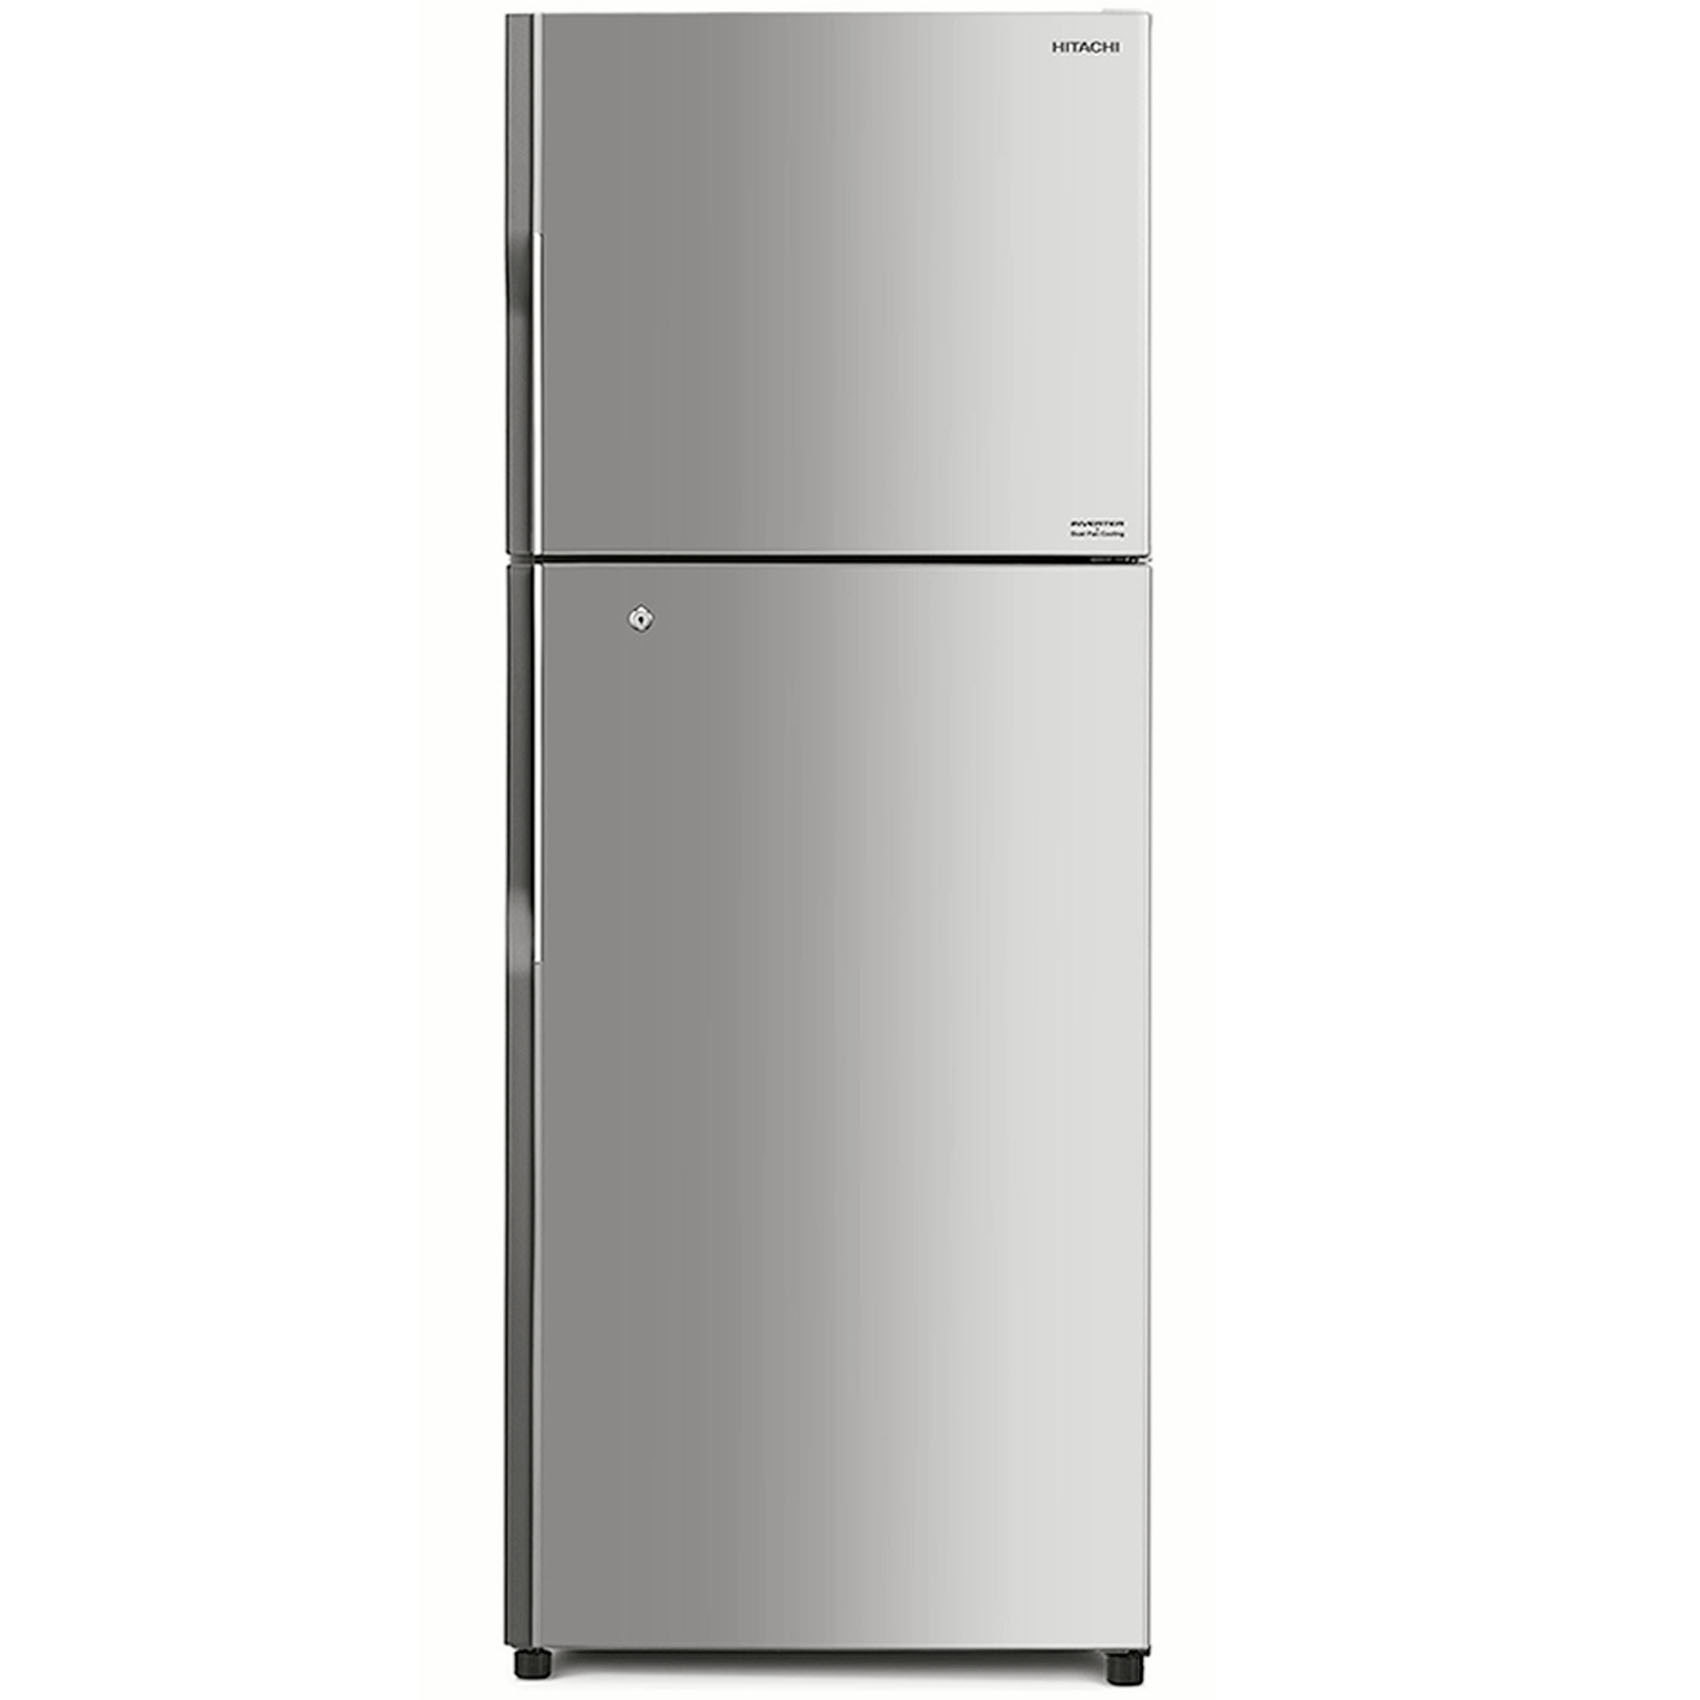 HITACHI FRIDGE RV440PUK3K 440L